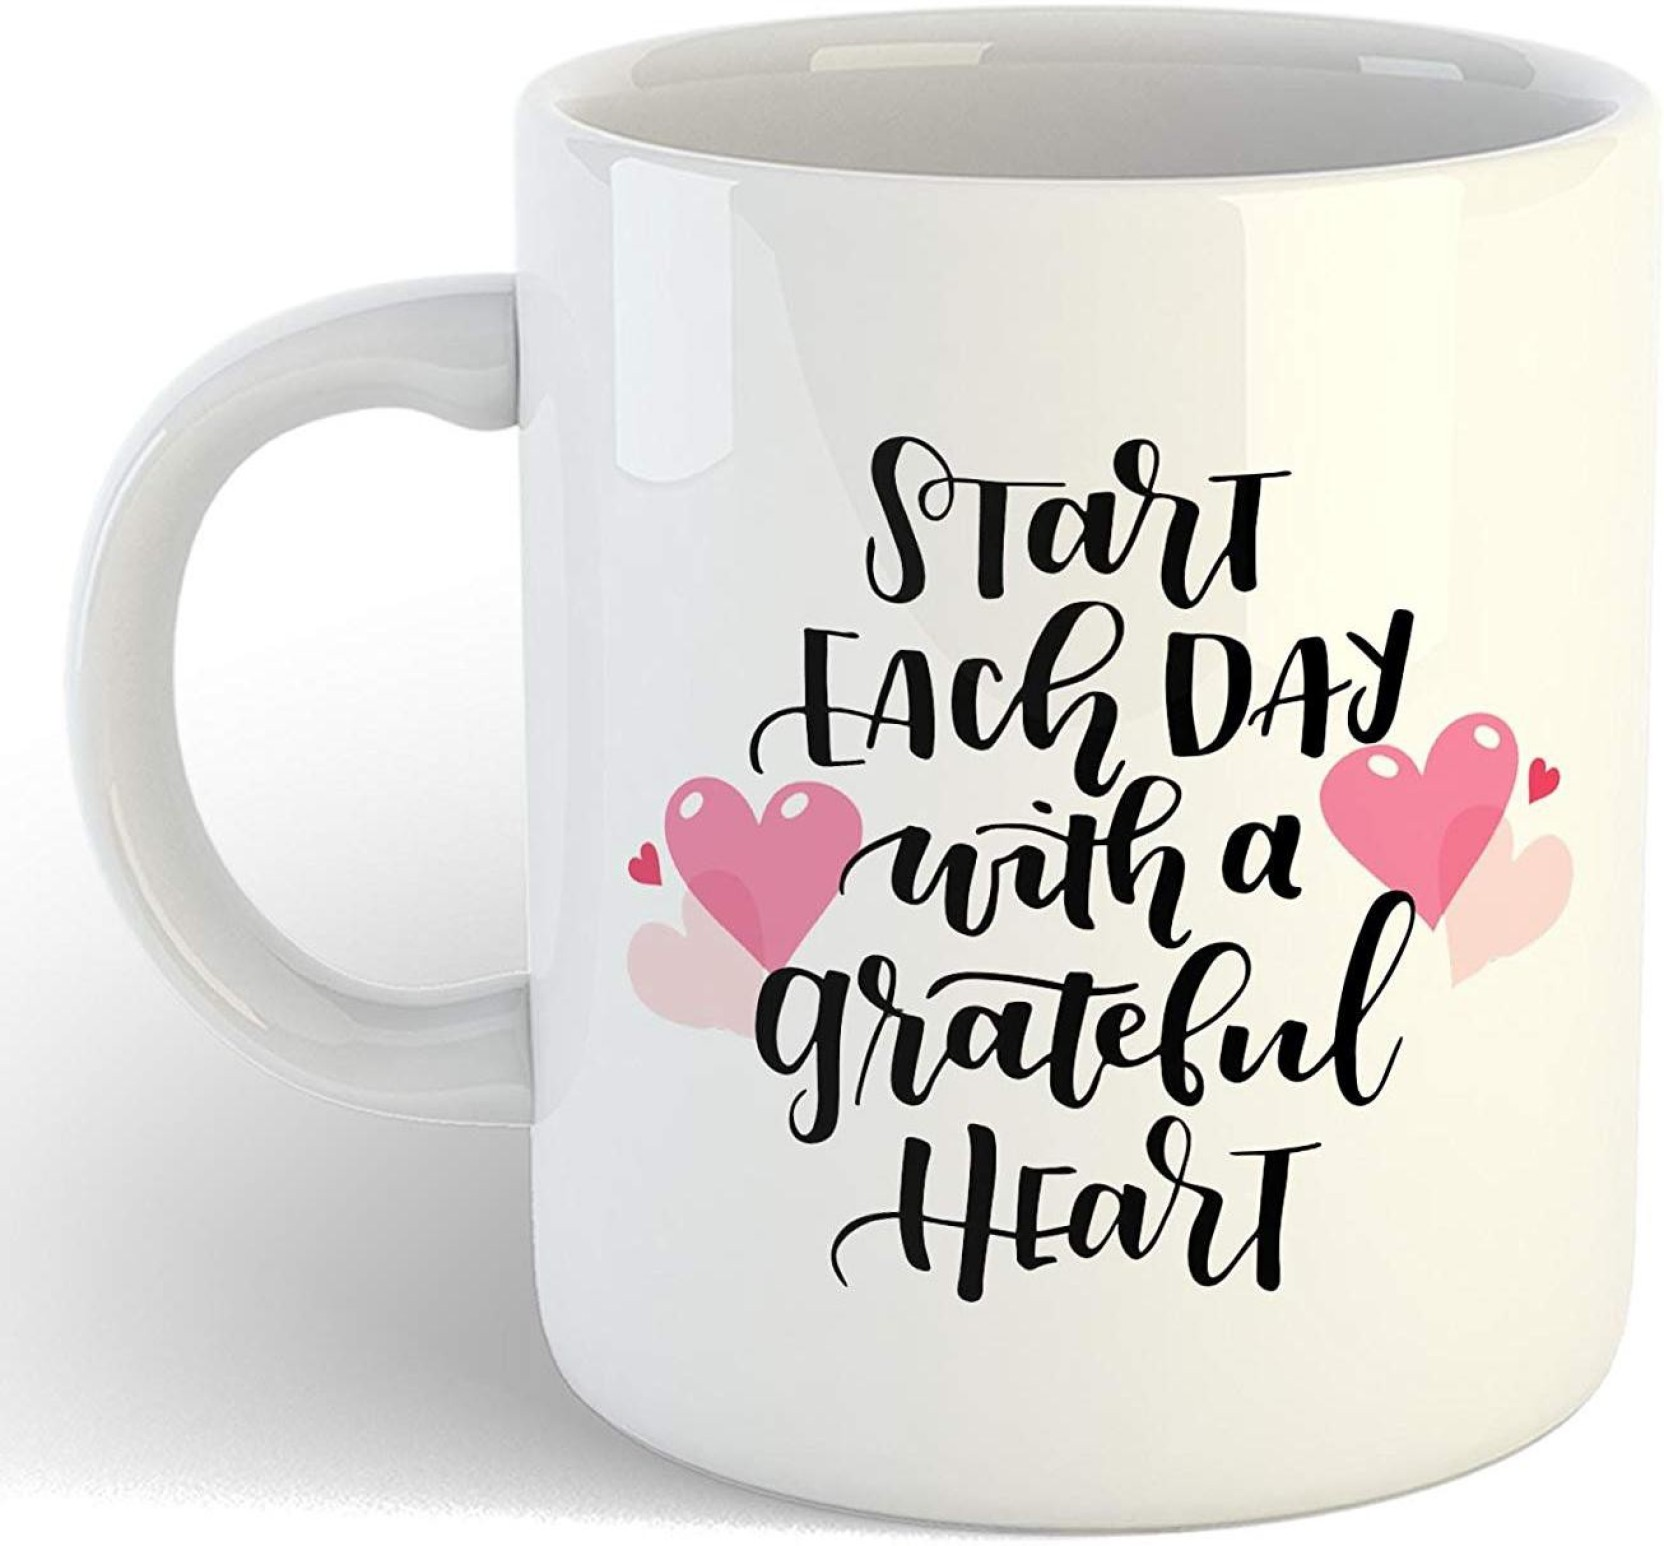 Motivational Start Each Day With A Grateful Heart Quote Printed Circuit Board Manufactureronline Quoteprinted Add To Cart